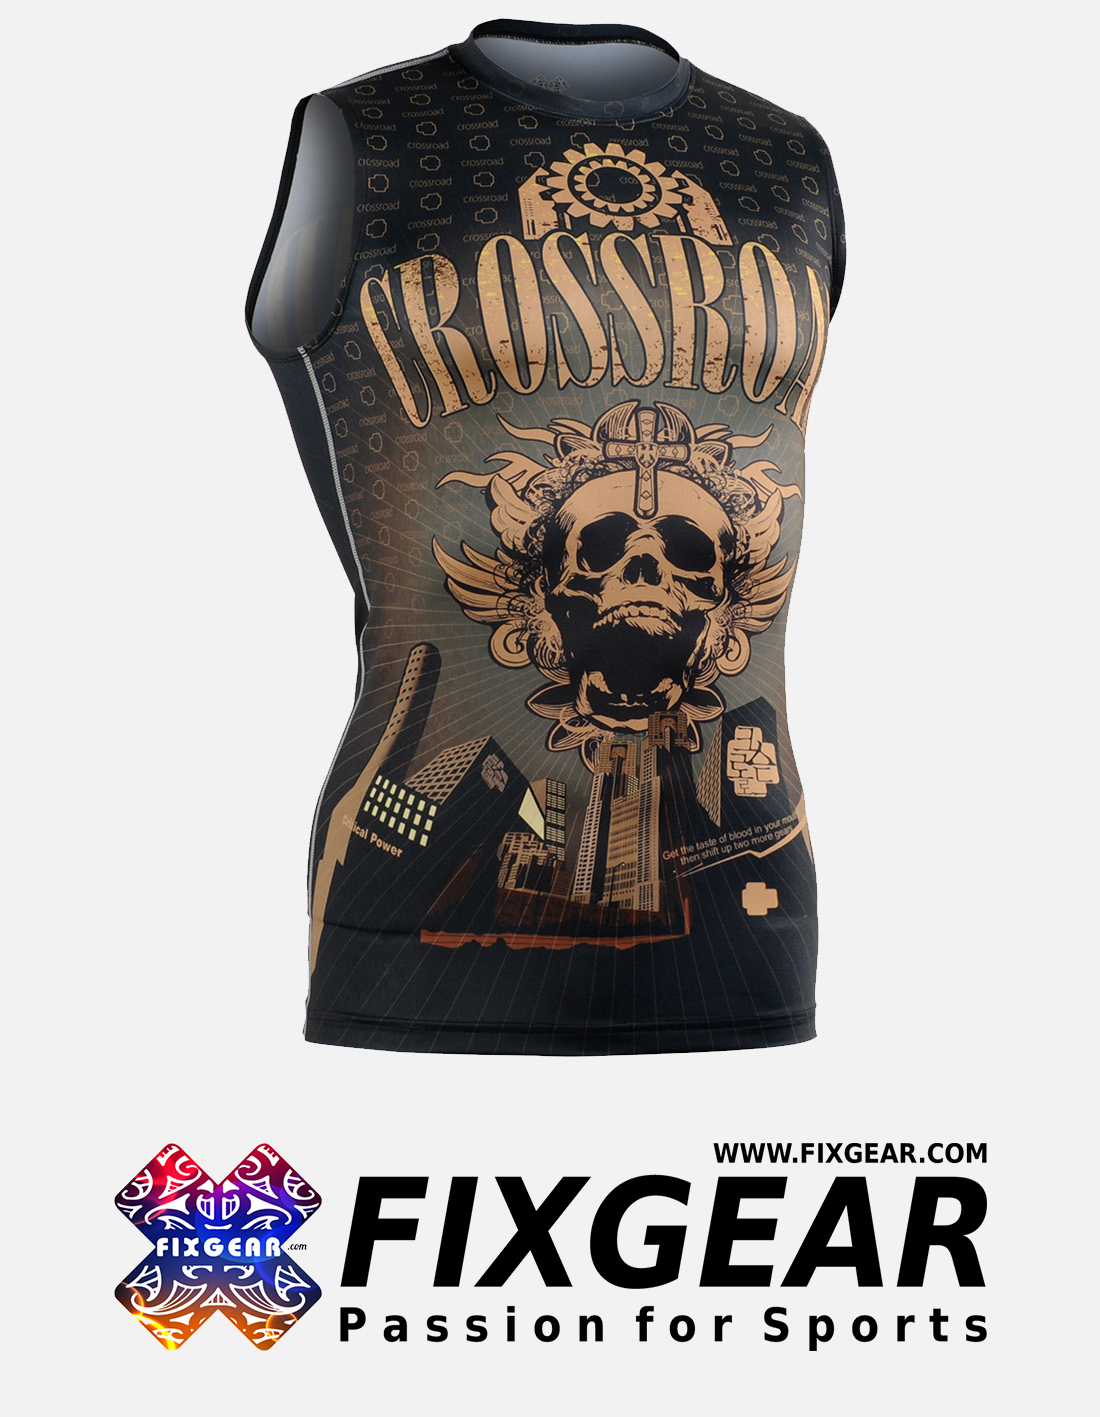 FIXGEAR CFN-H27 Compression Base Layer Sleeveless Shirt